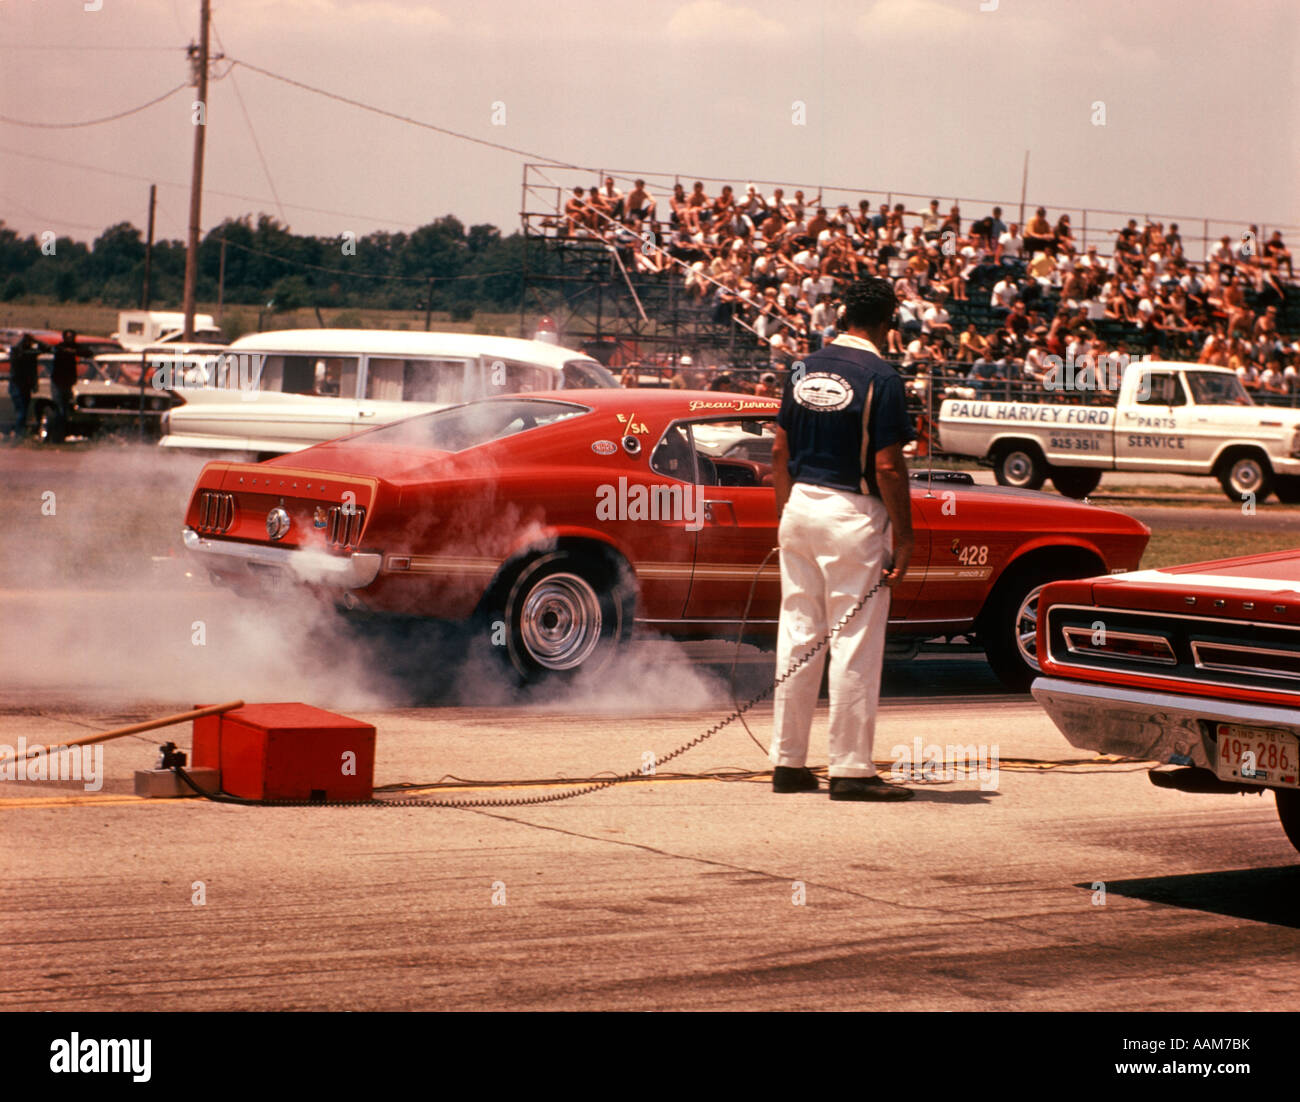 Pit Mechanic By Race Car Burning Rubber Drag Racing